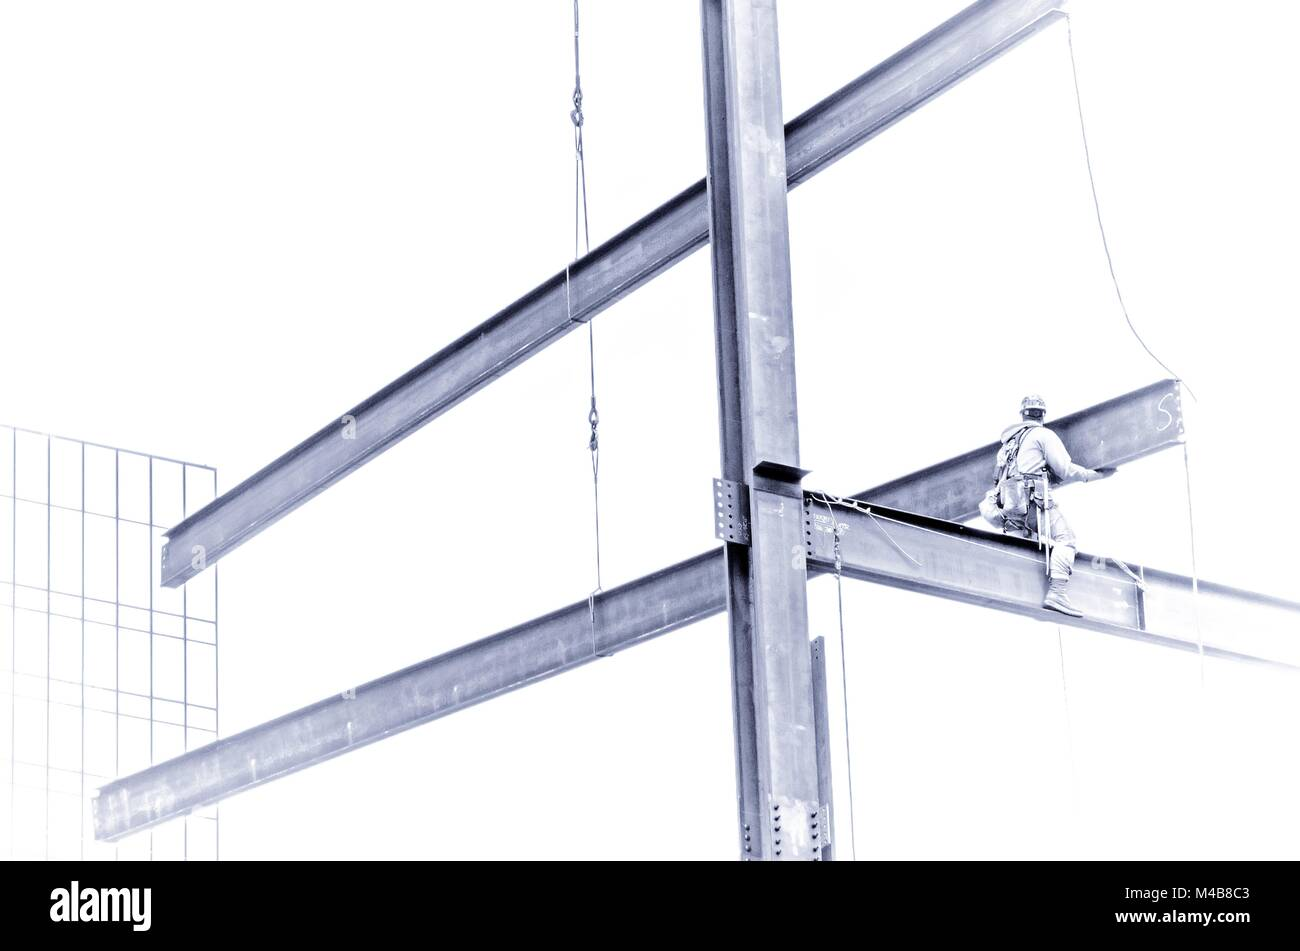 construction worker working on highrise building - Stock Image